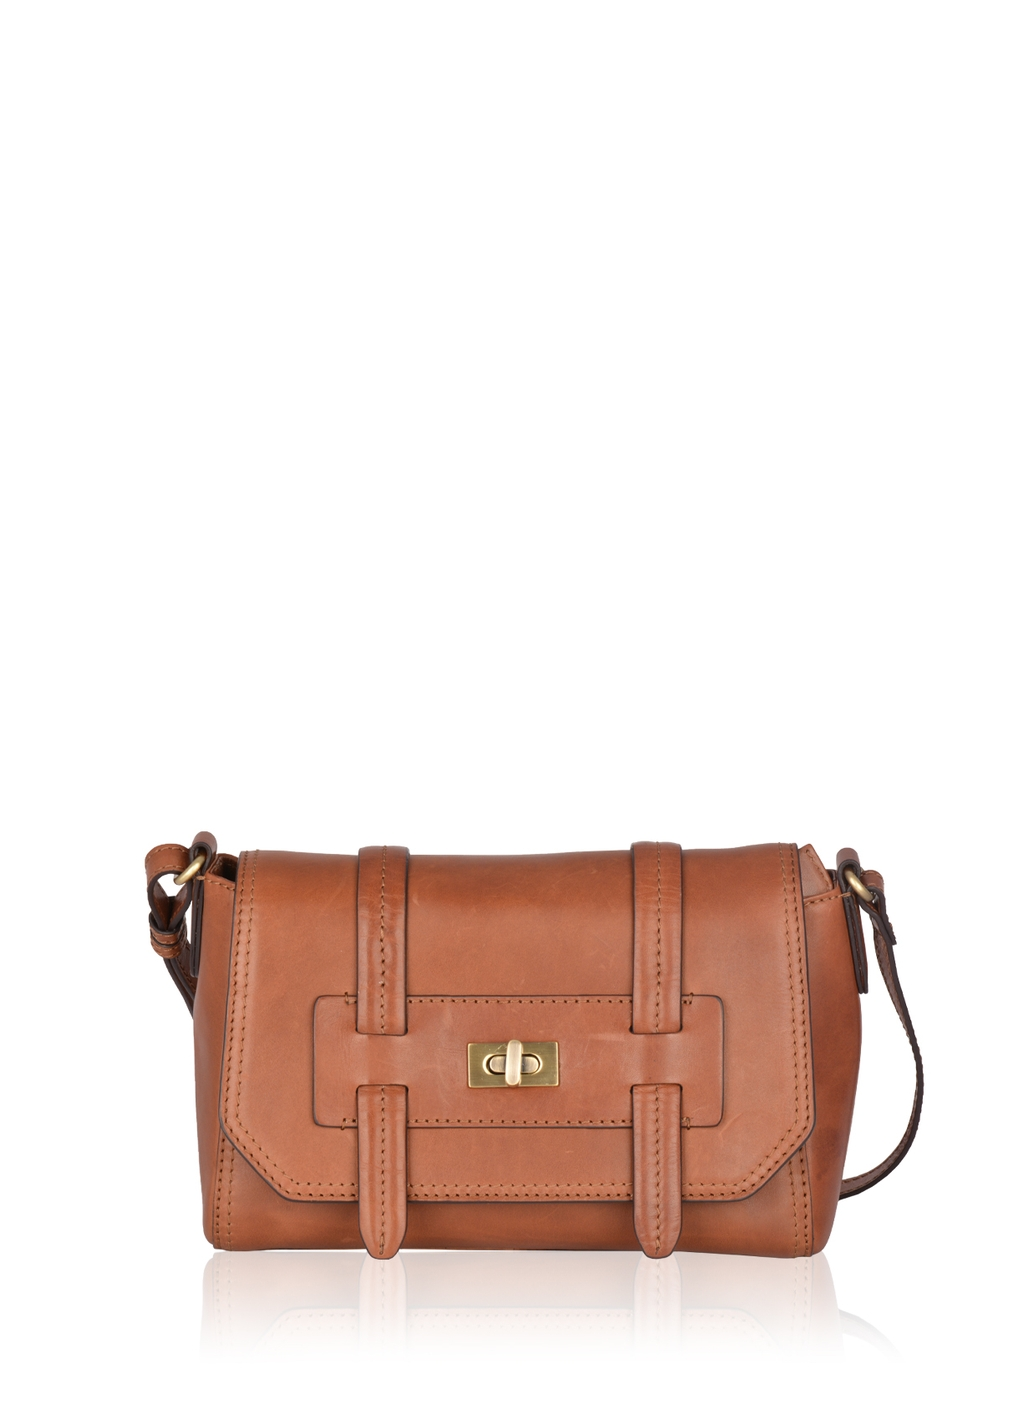 Brampton Leather Cross Body Bag in Brown